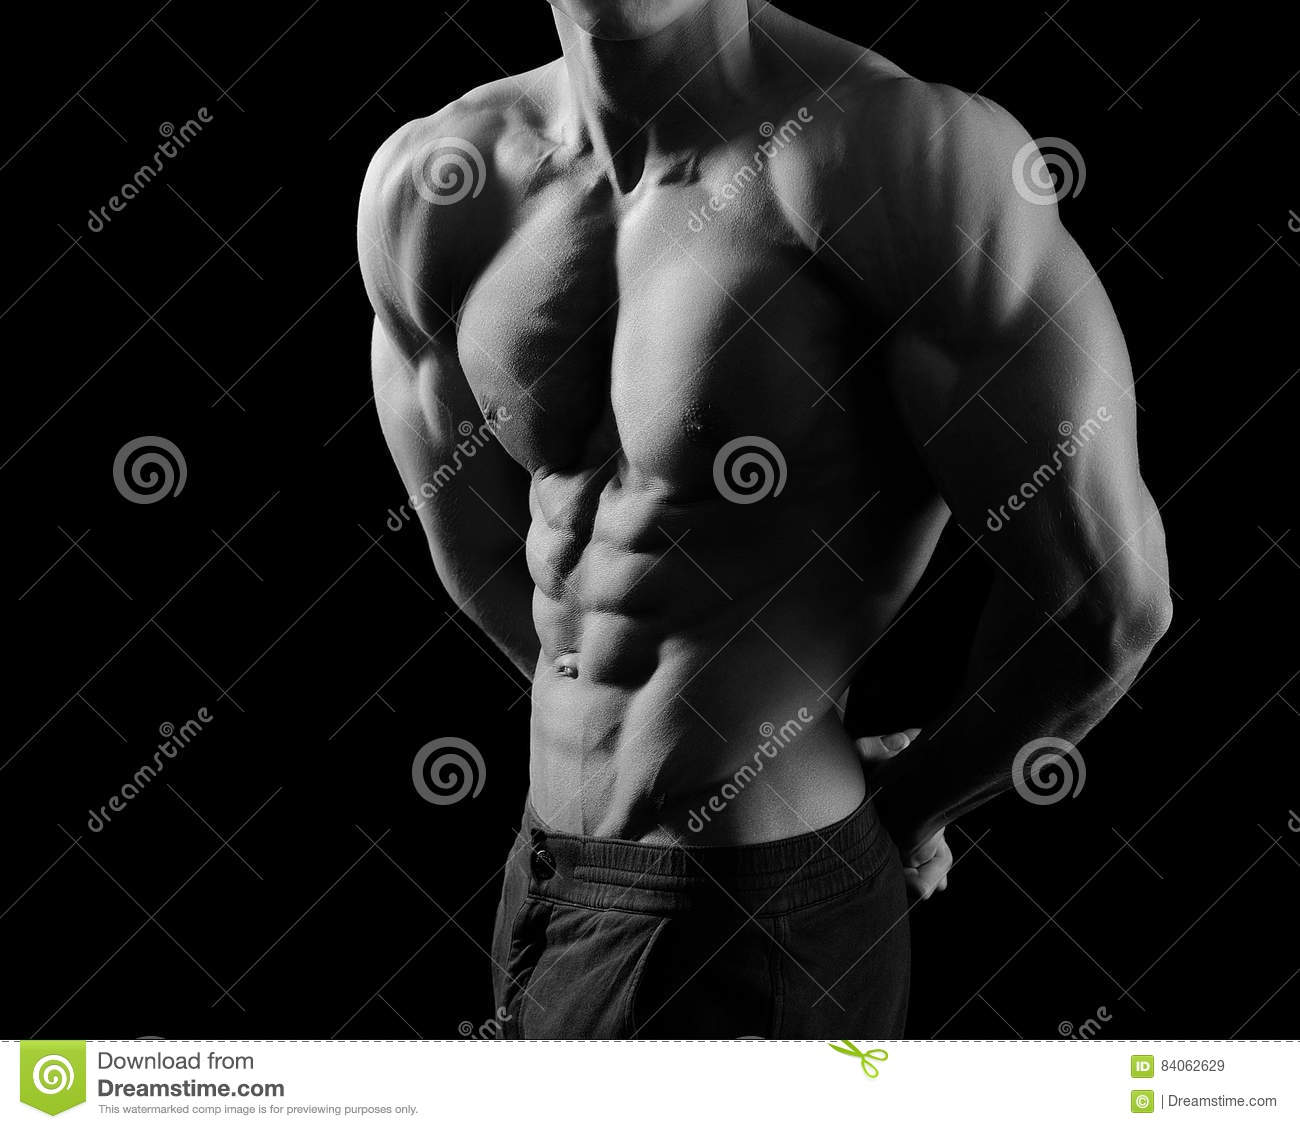 Download Black And White Shots Of A Male Fitness Model Stock Image - Image of male, motivation: 84062629